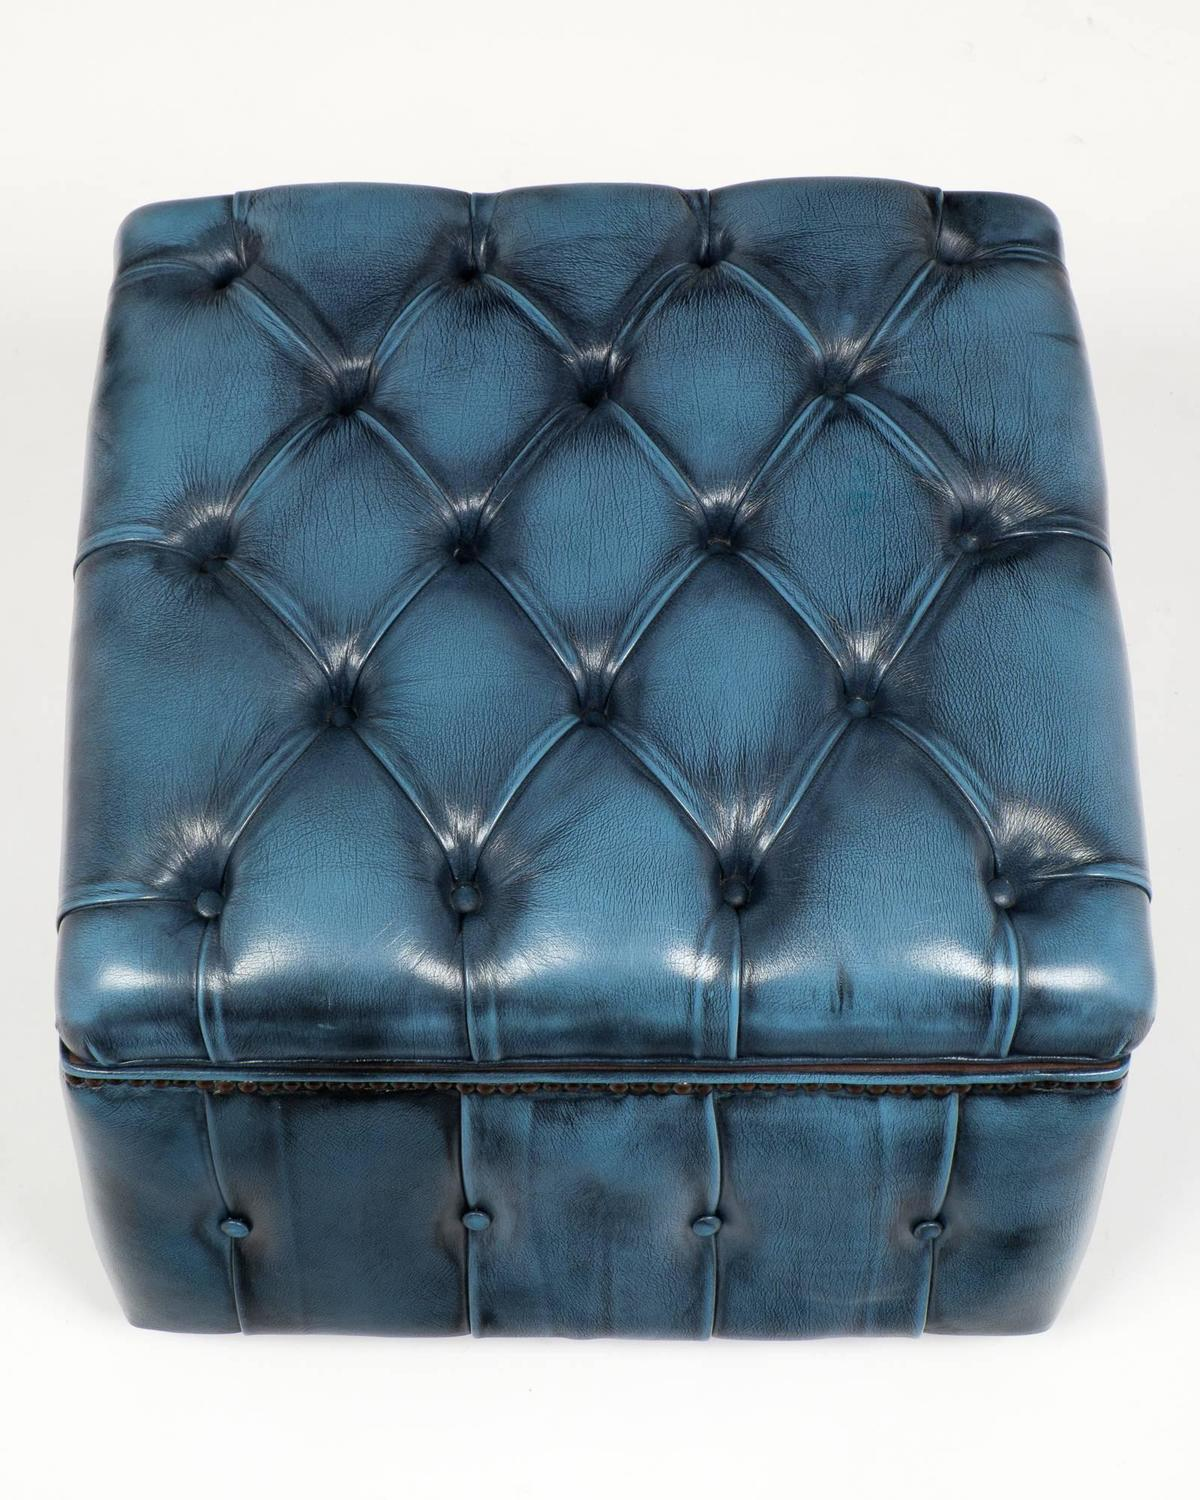 Vintage Steel Blue Leather Chesterfield Storage Ottoman At